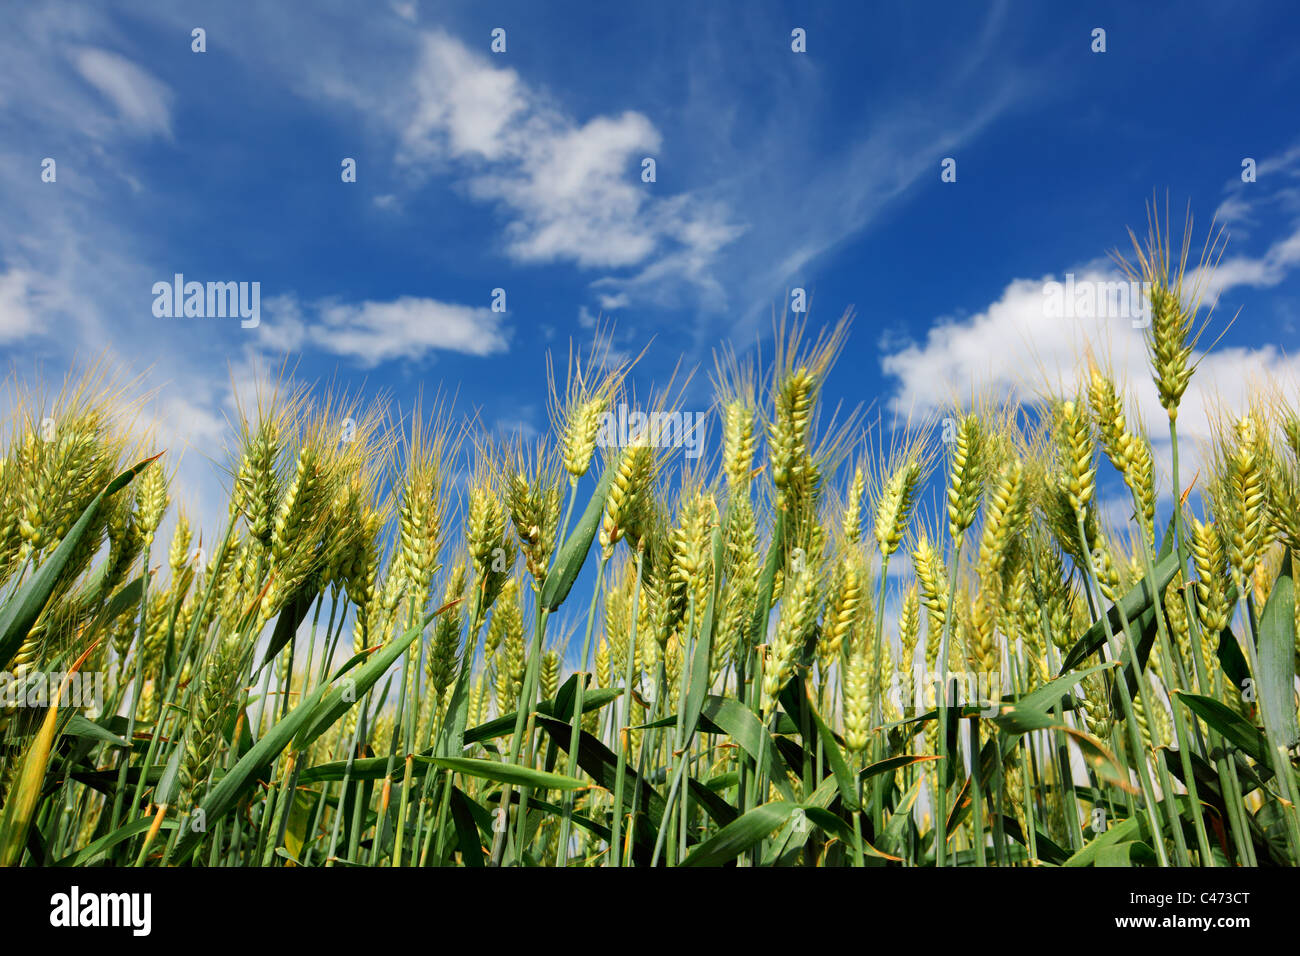 green wheat field and blue sky - Stock Image